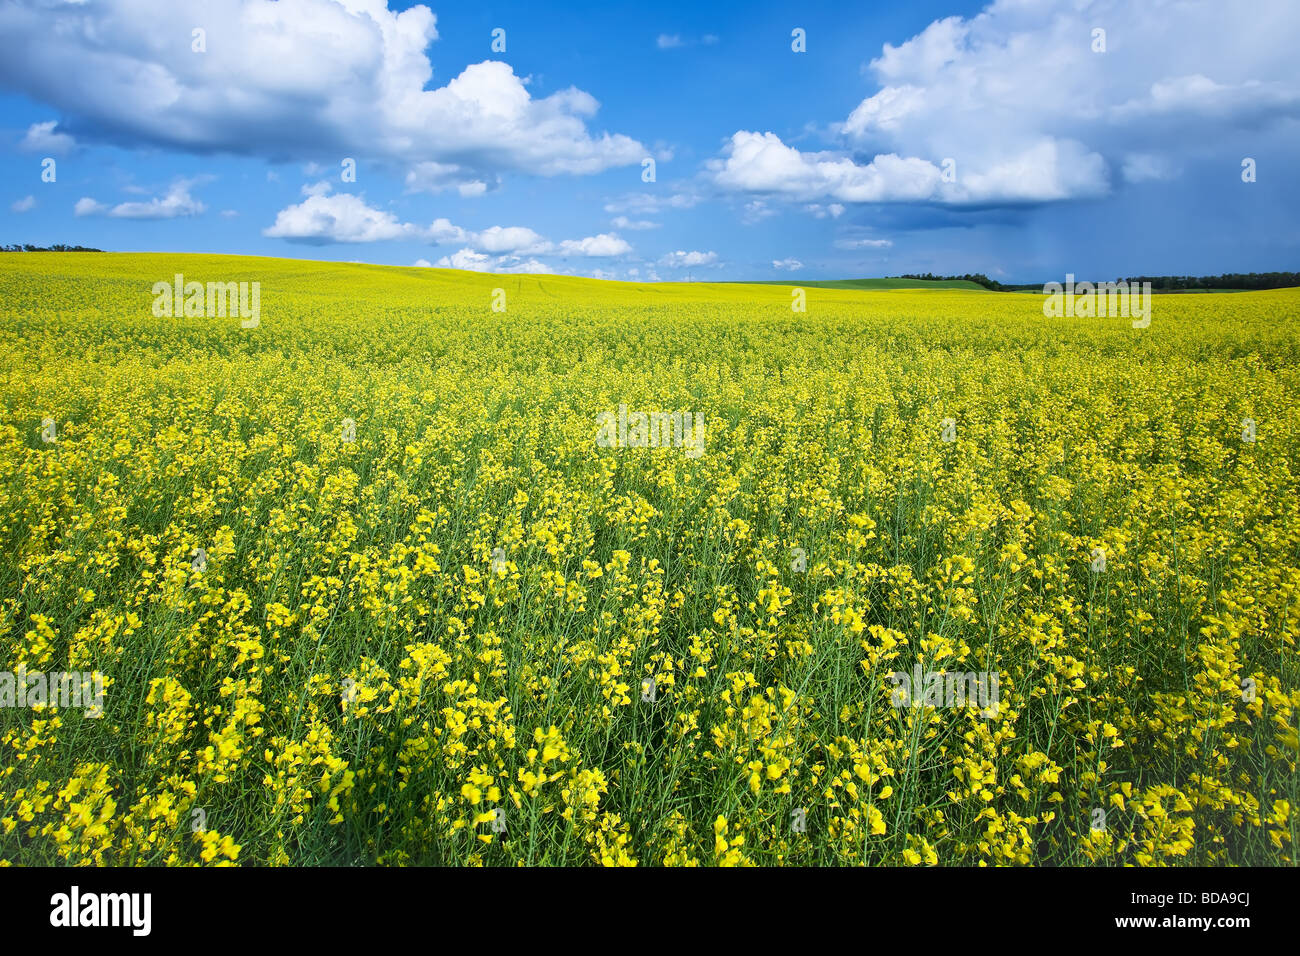 Canola field and cumulus clouds on the Canadian Prairie, Pembina Valley, Manitoba, Canada. Stock Photo